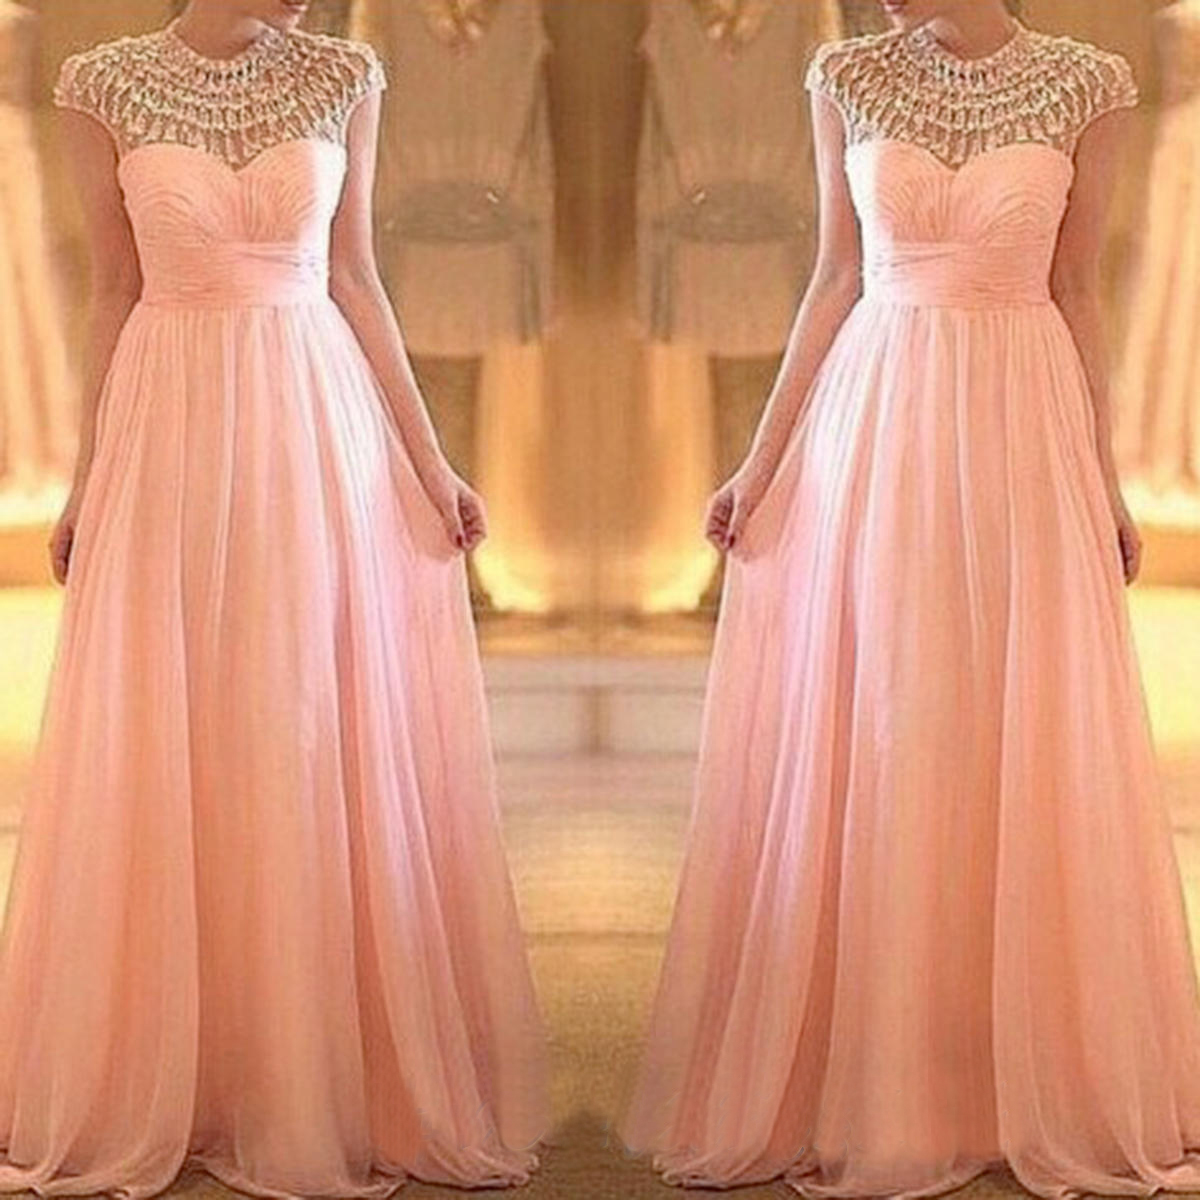 Modest Prom Dresses Blush Pink Prom Dress Long Prom